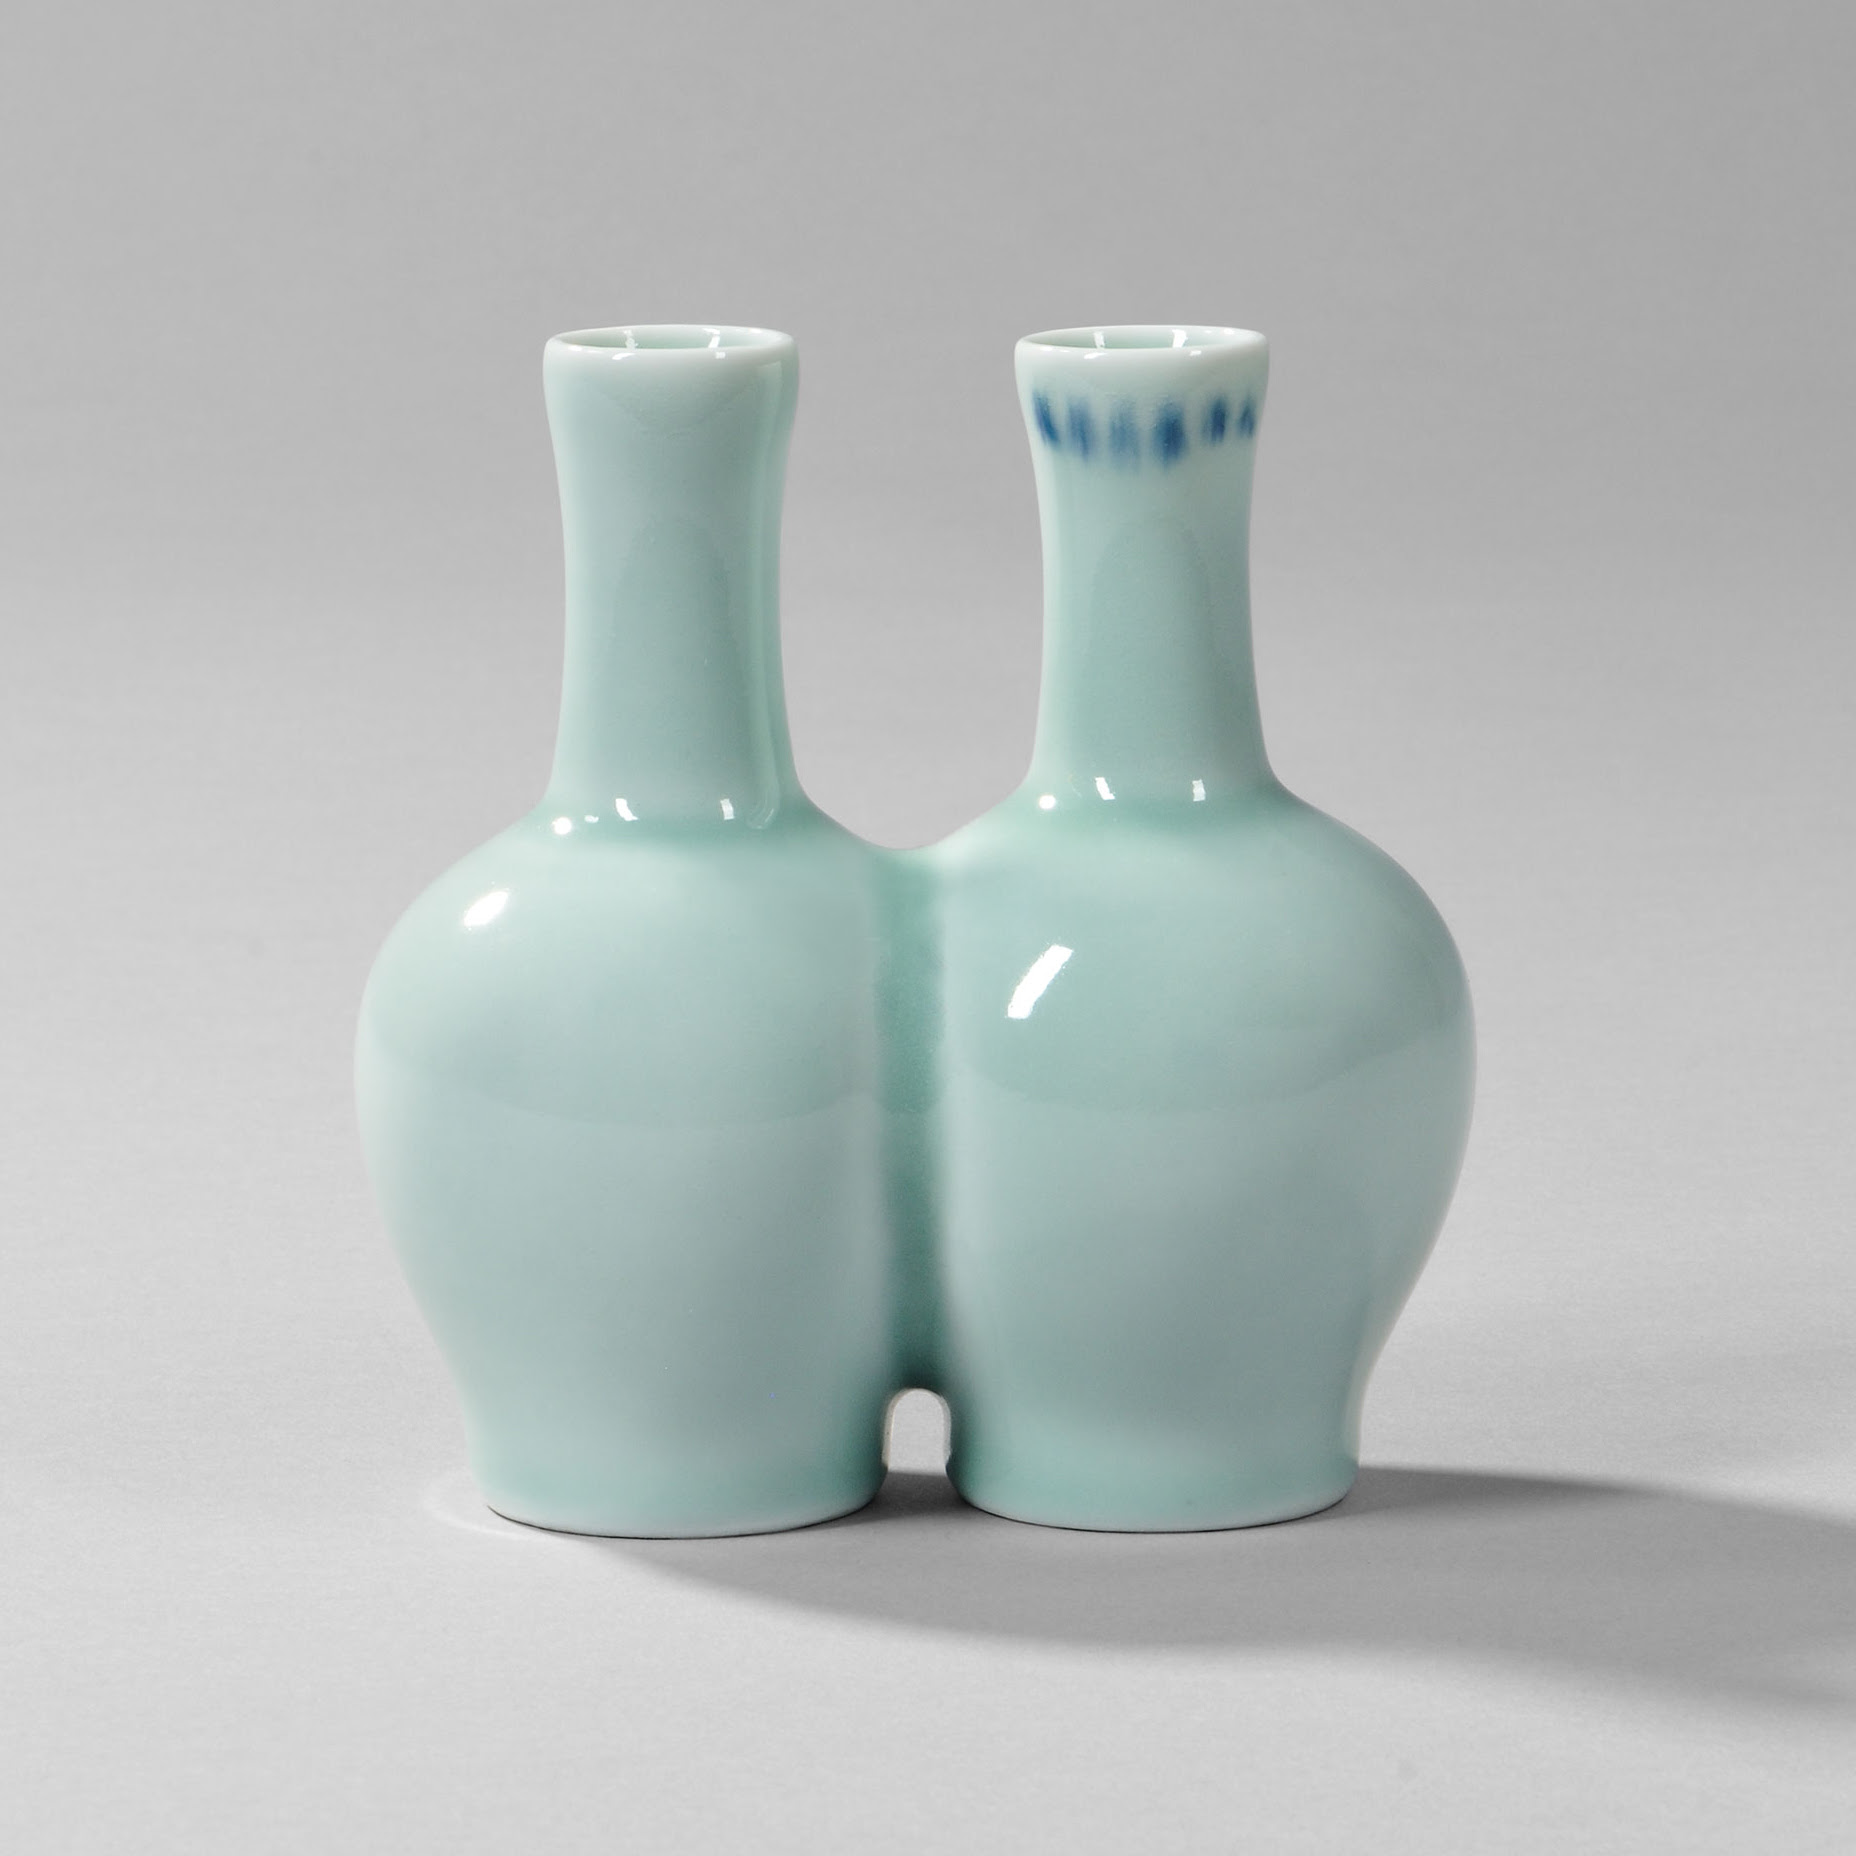 Celadon-glazed Double-bottle Vase, China, 18th century (Lot 127, Estimate $8,000-10,000)